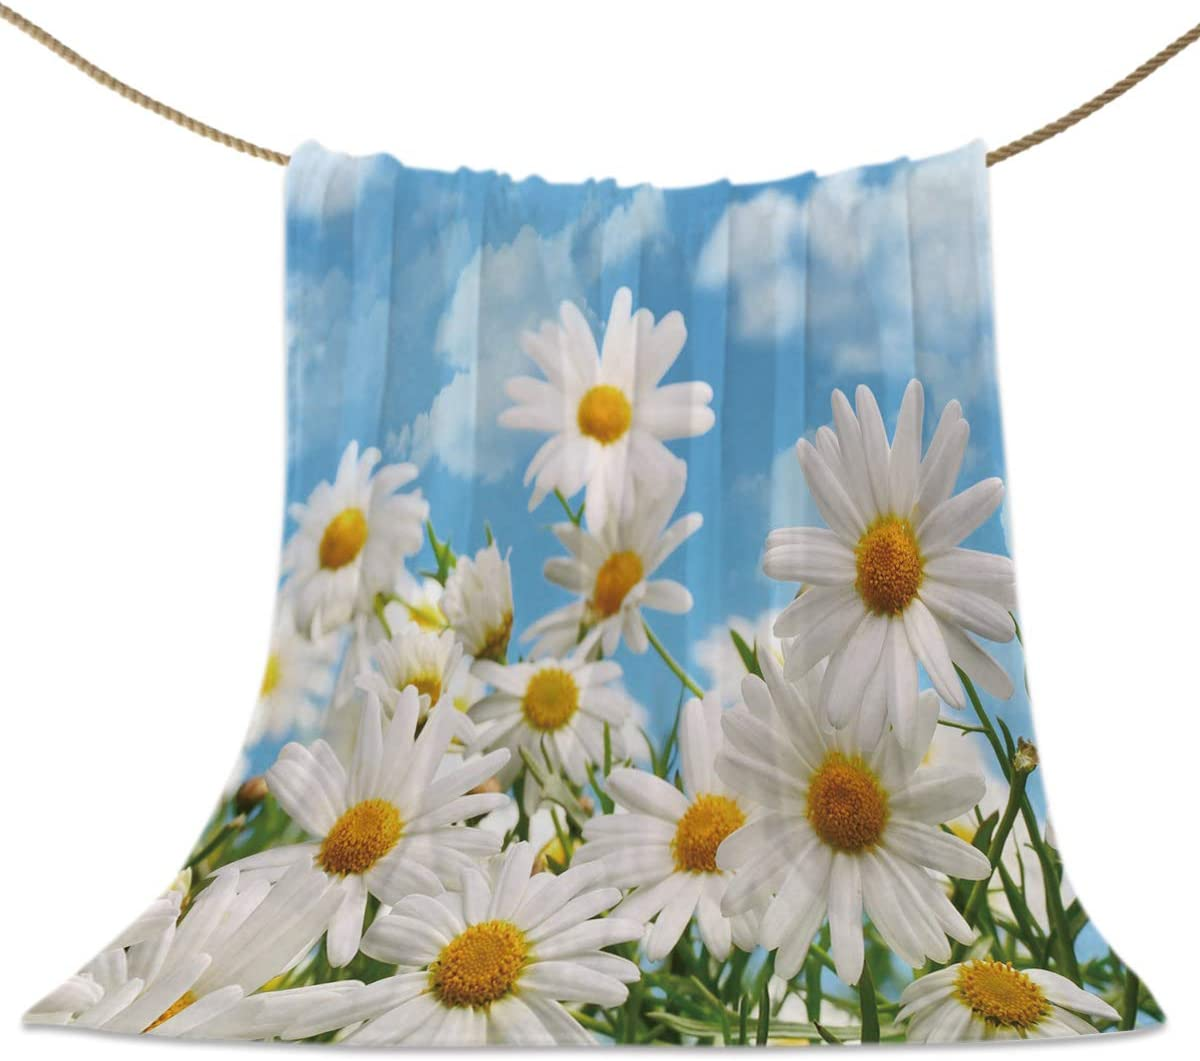 Throw Blankets Daisy Flowers Field 付与 Fuzzy 品質保証 Bedsprea Bed Cover Soft